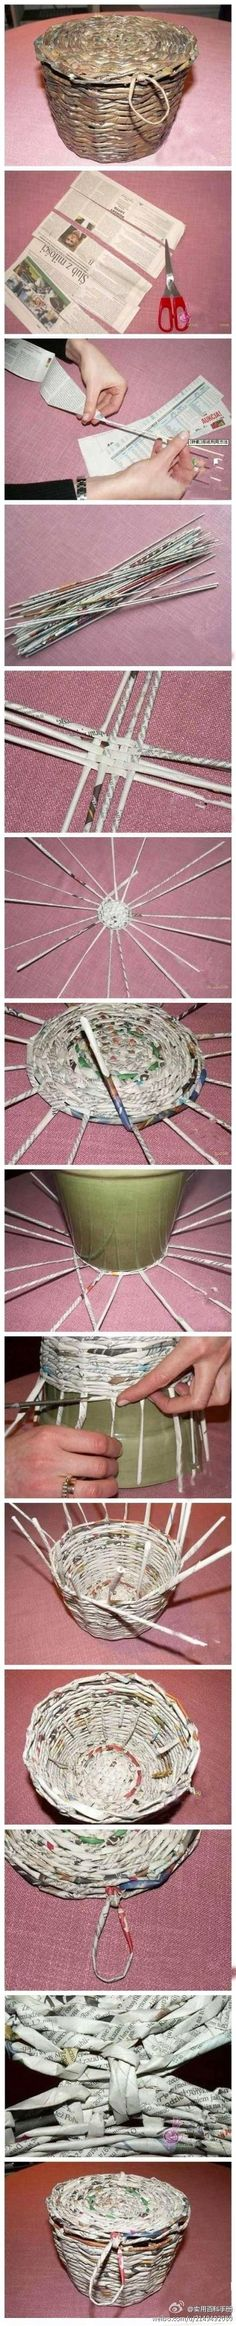 DIY Newspaper Basket DIY Projects | UsefulDIY.com Follow Us on Facebook --> https://www.facebook.com/UsefulDiy